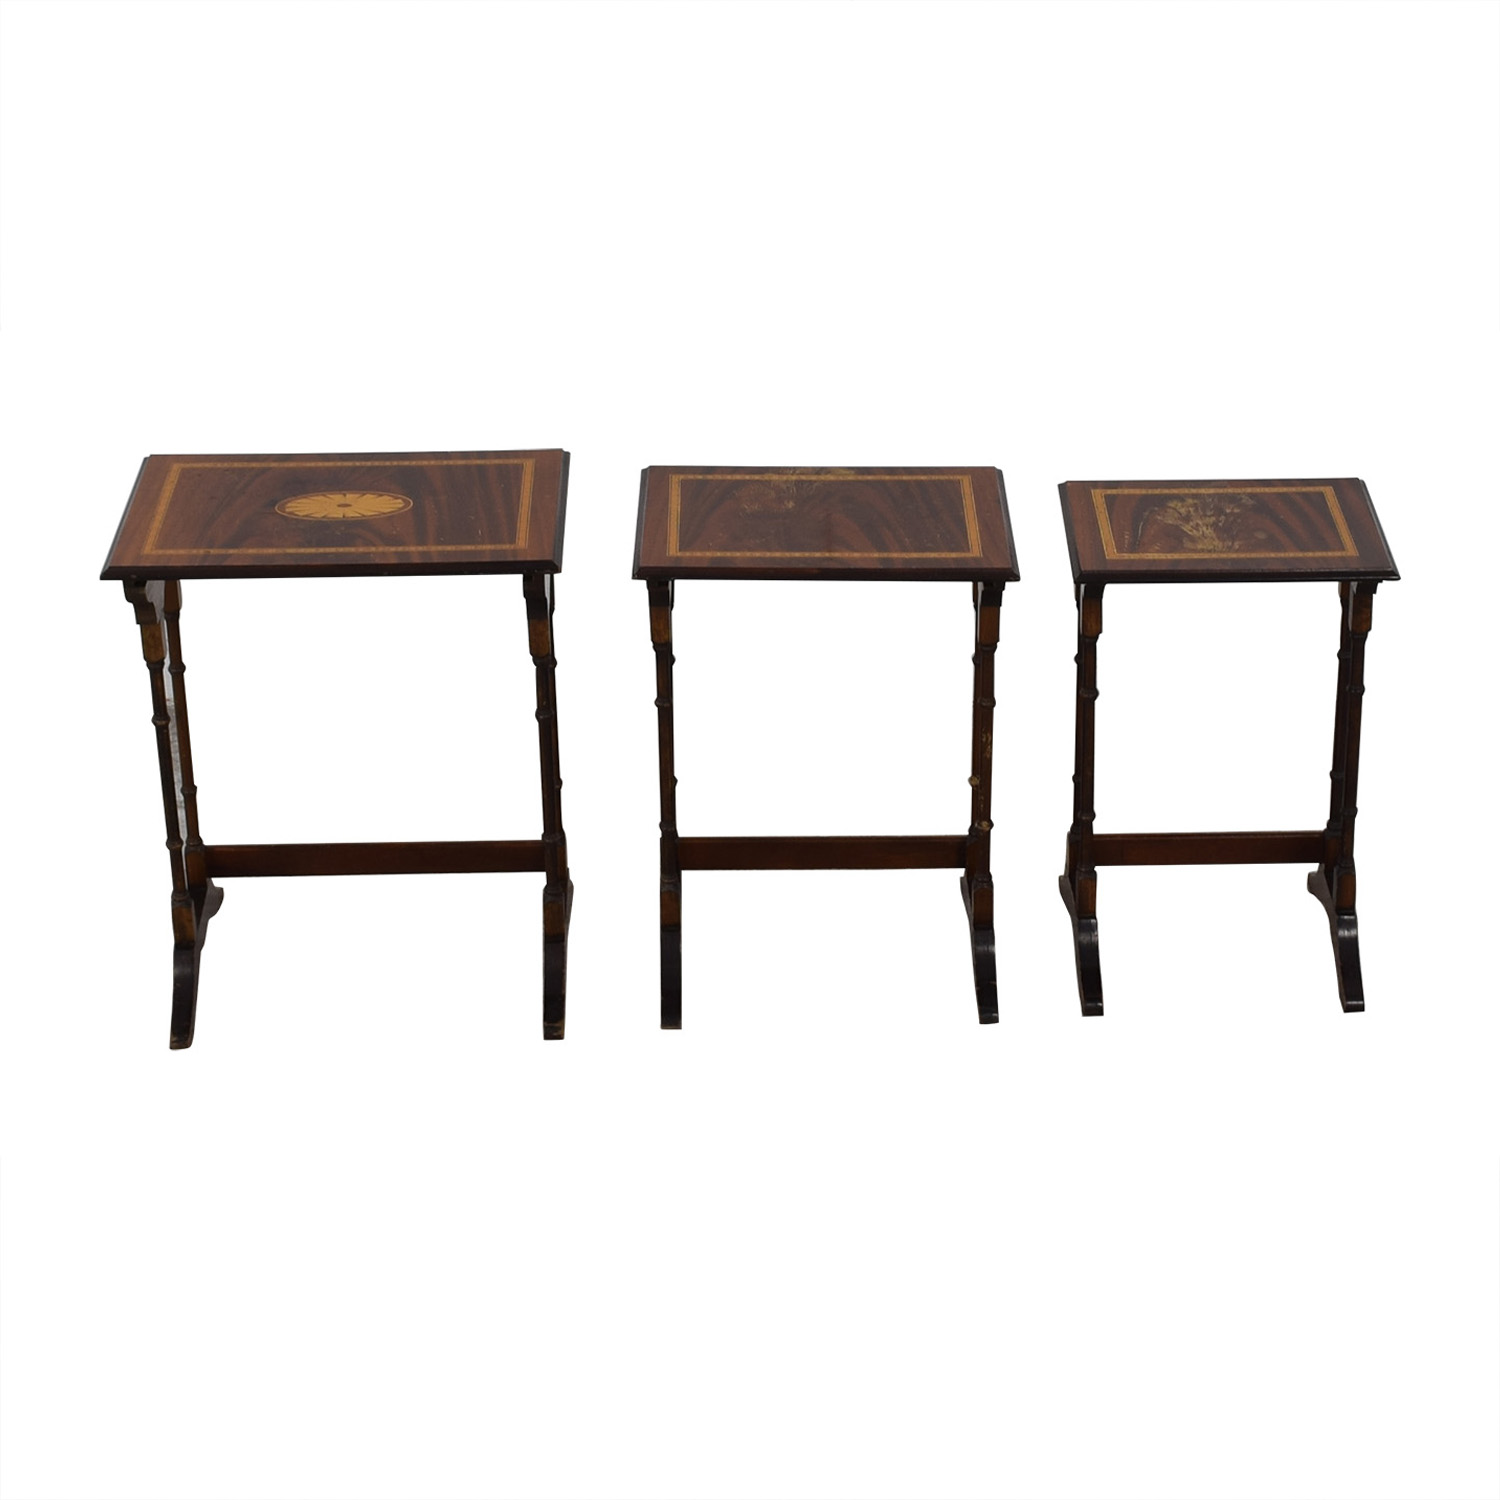 Decorative Nested Accent Tables for sale